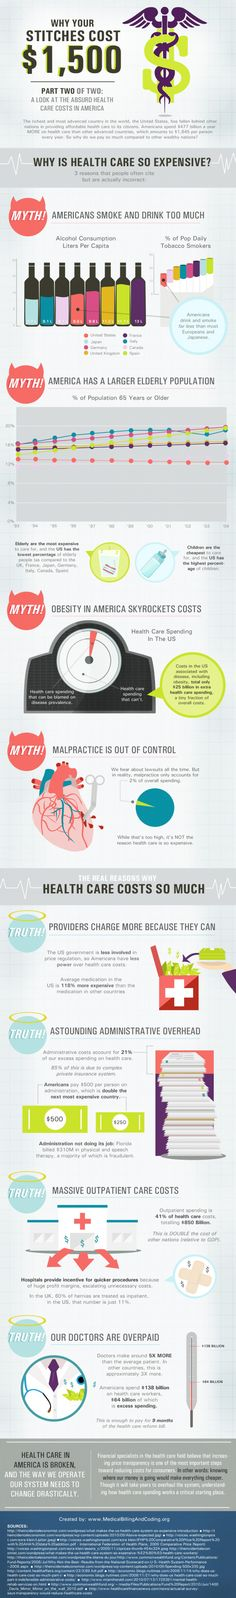 Expensive Health Care Cost In America Infographic